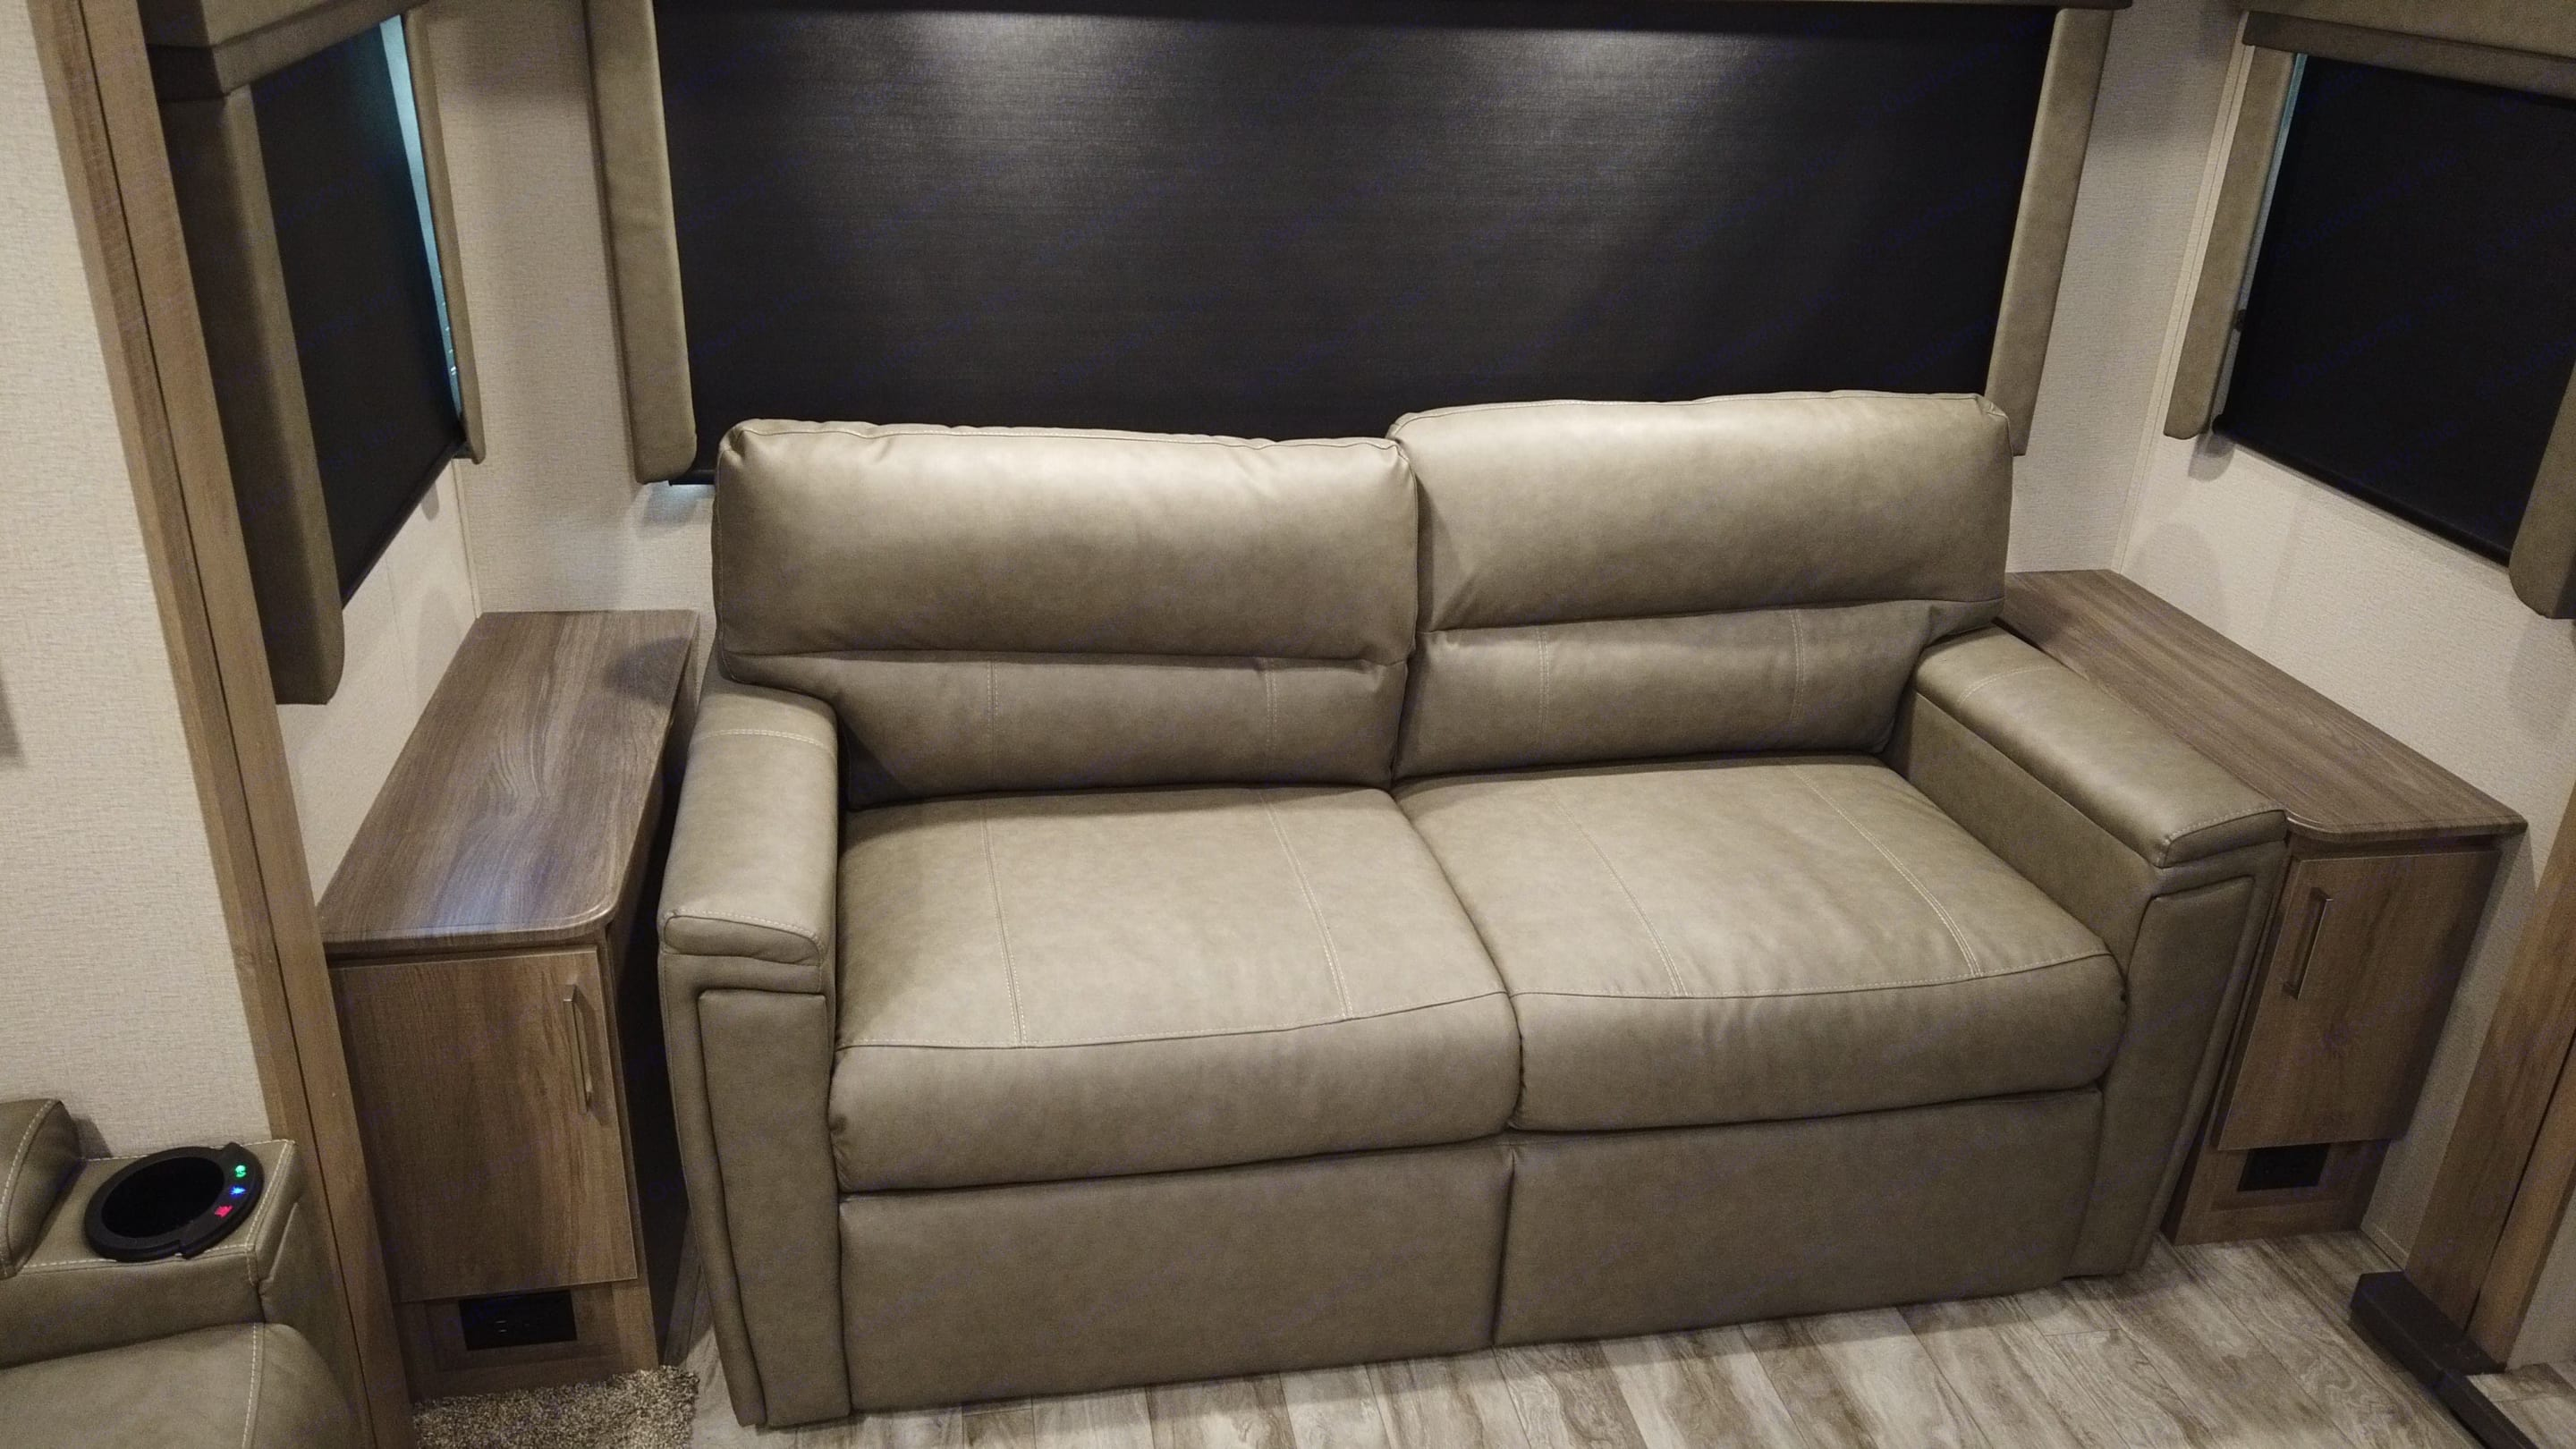 This loveseat pulls out into a full-size bed.. Grand Design Imagine 2021